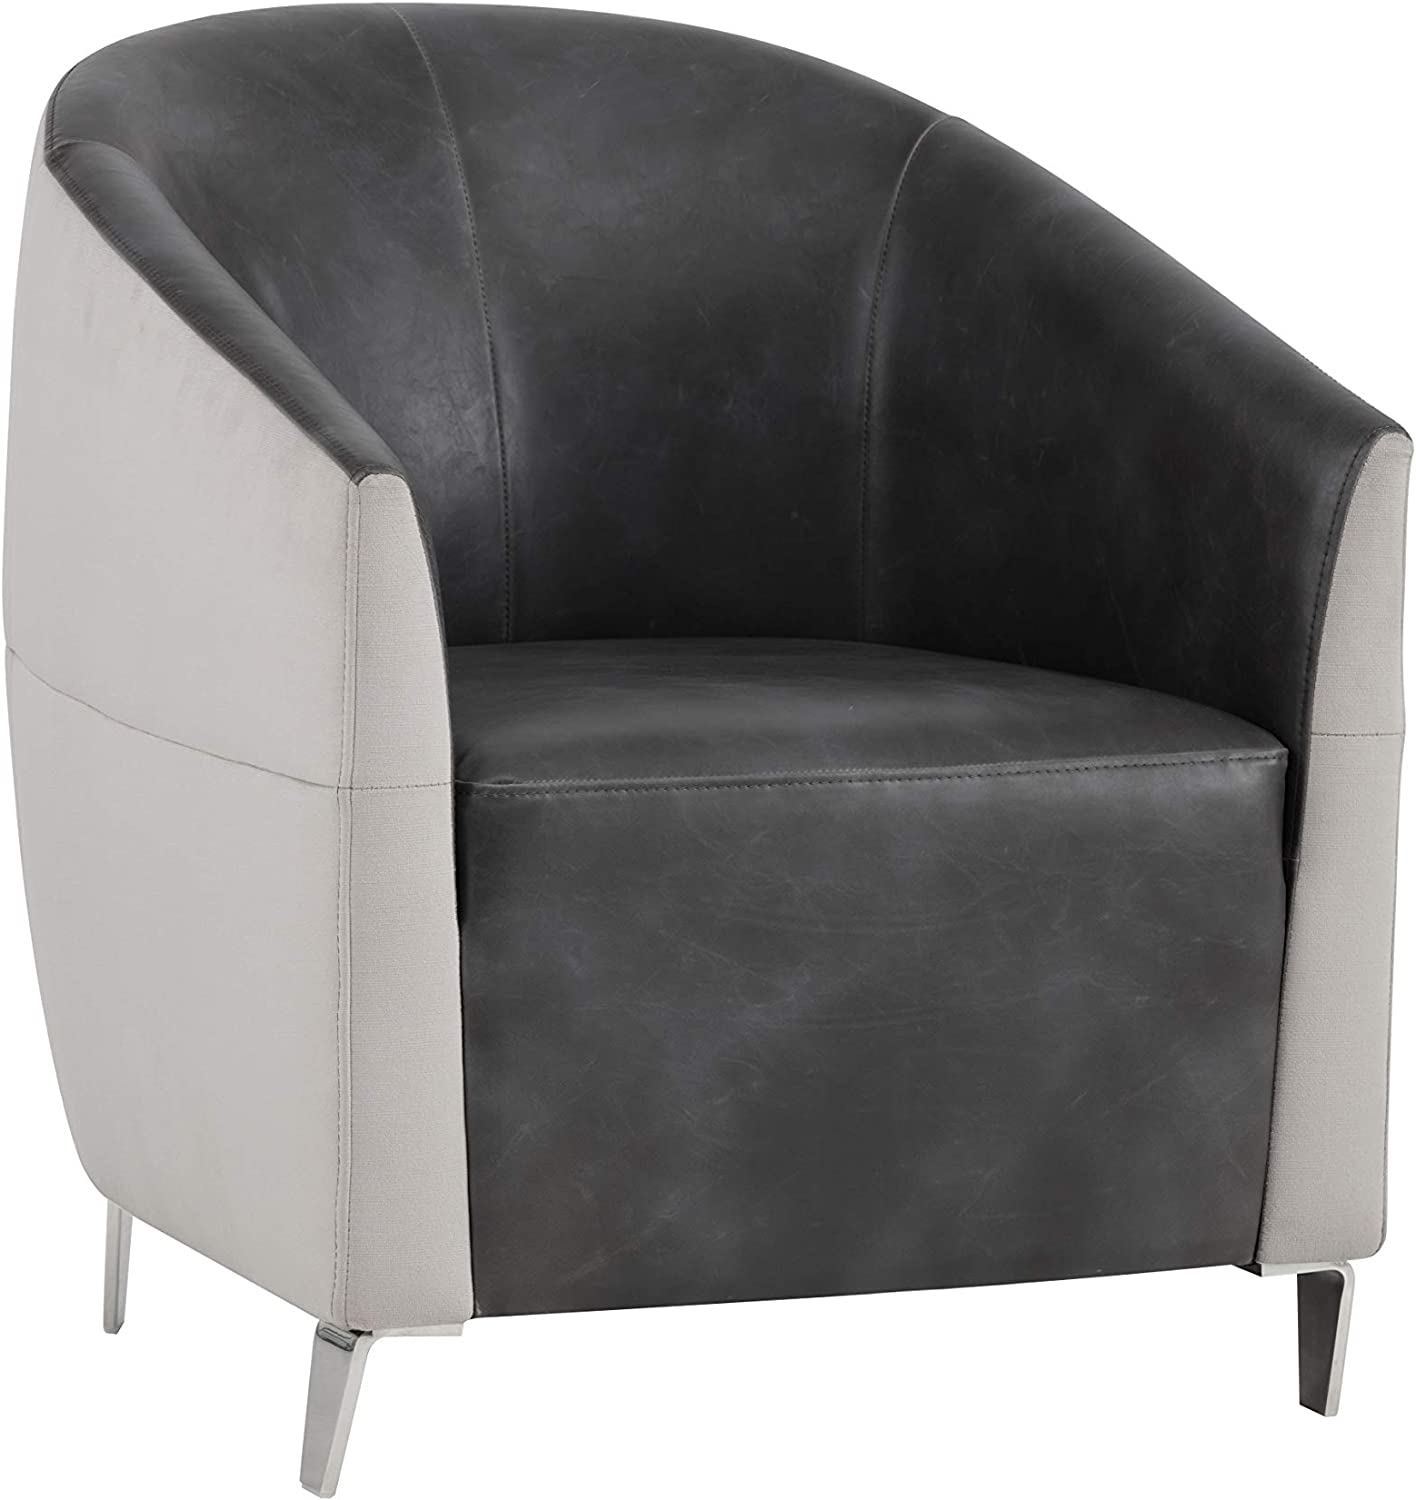 Sunpan 5west Occasional Chairs Dove Furniture Decor